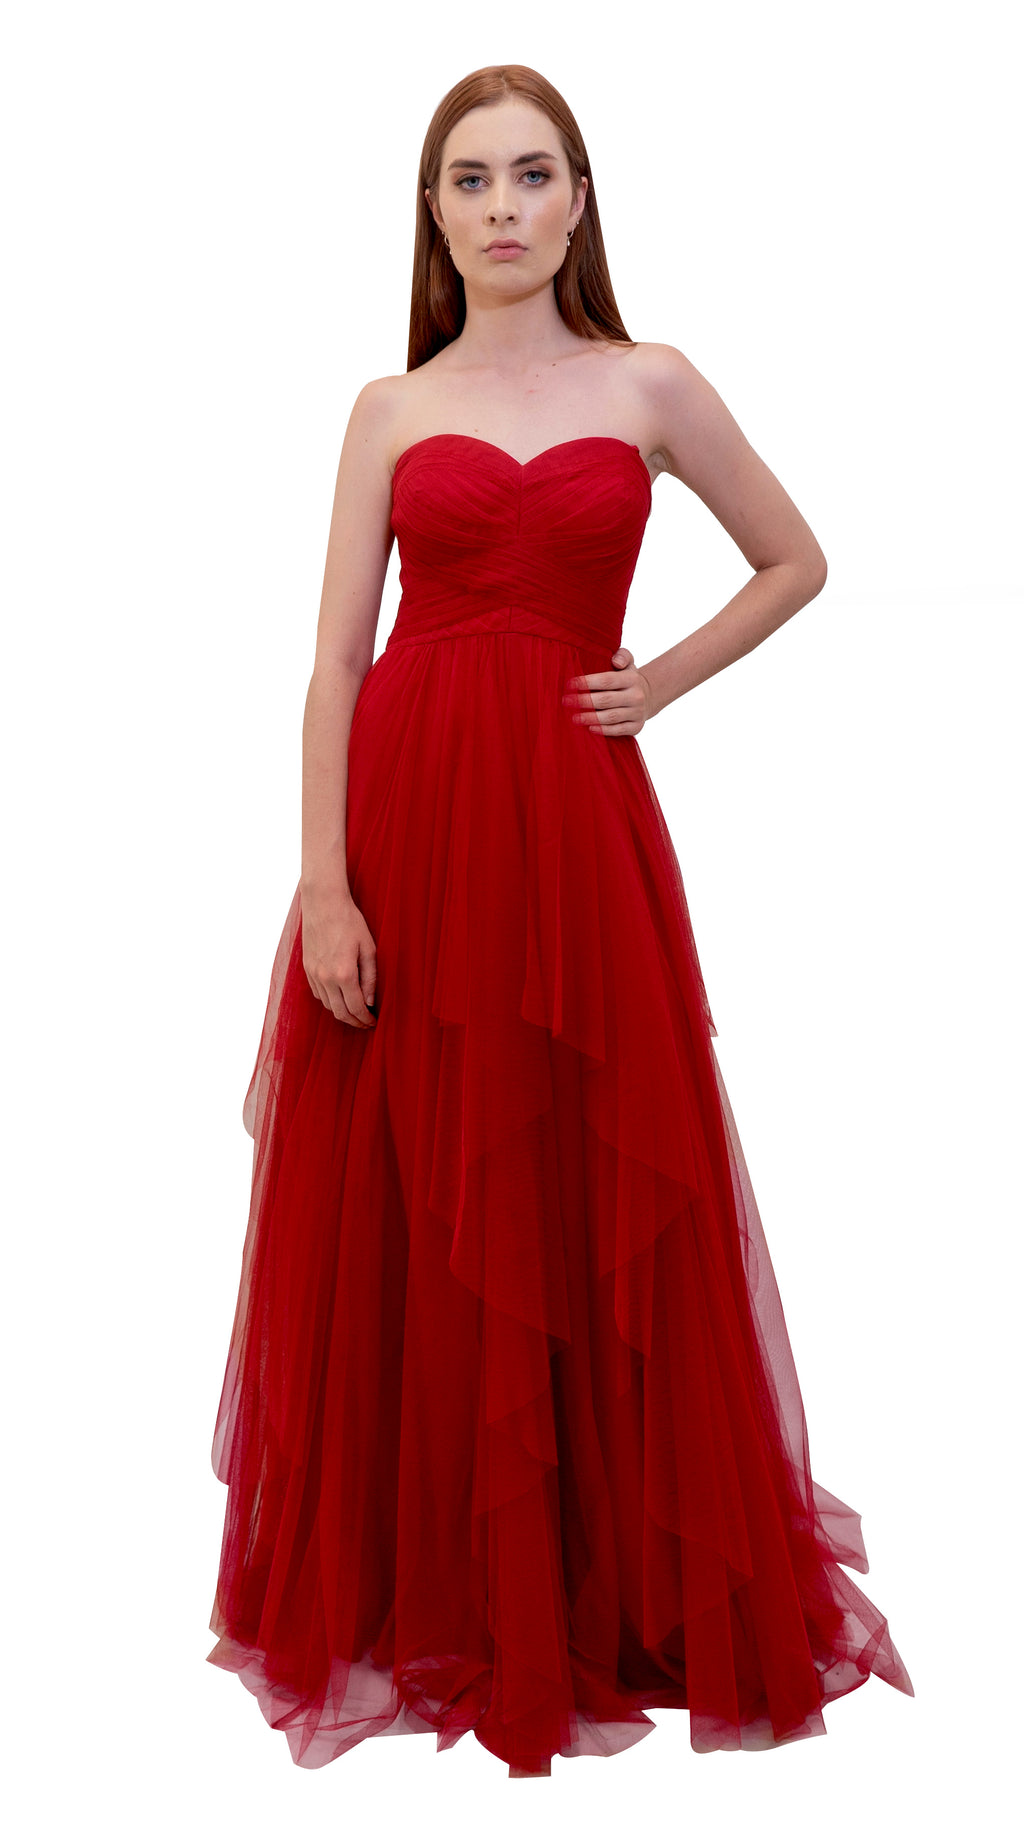 Bariano Petranzia Tulle Ball Gown Dark Cherry